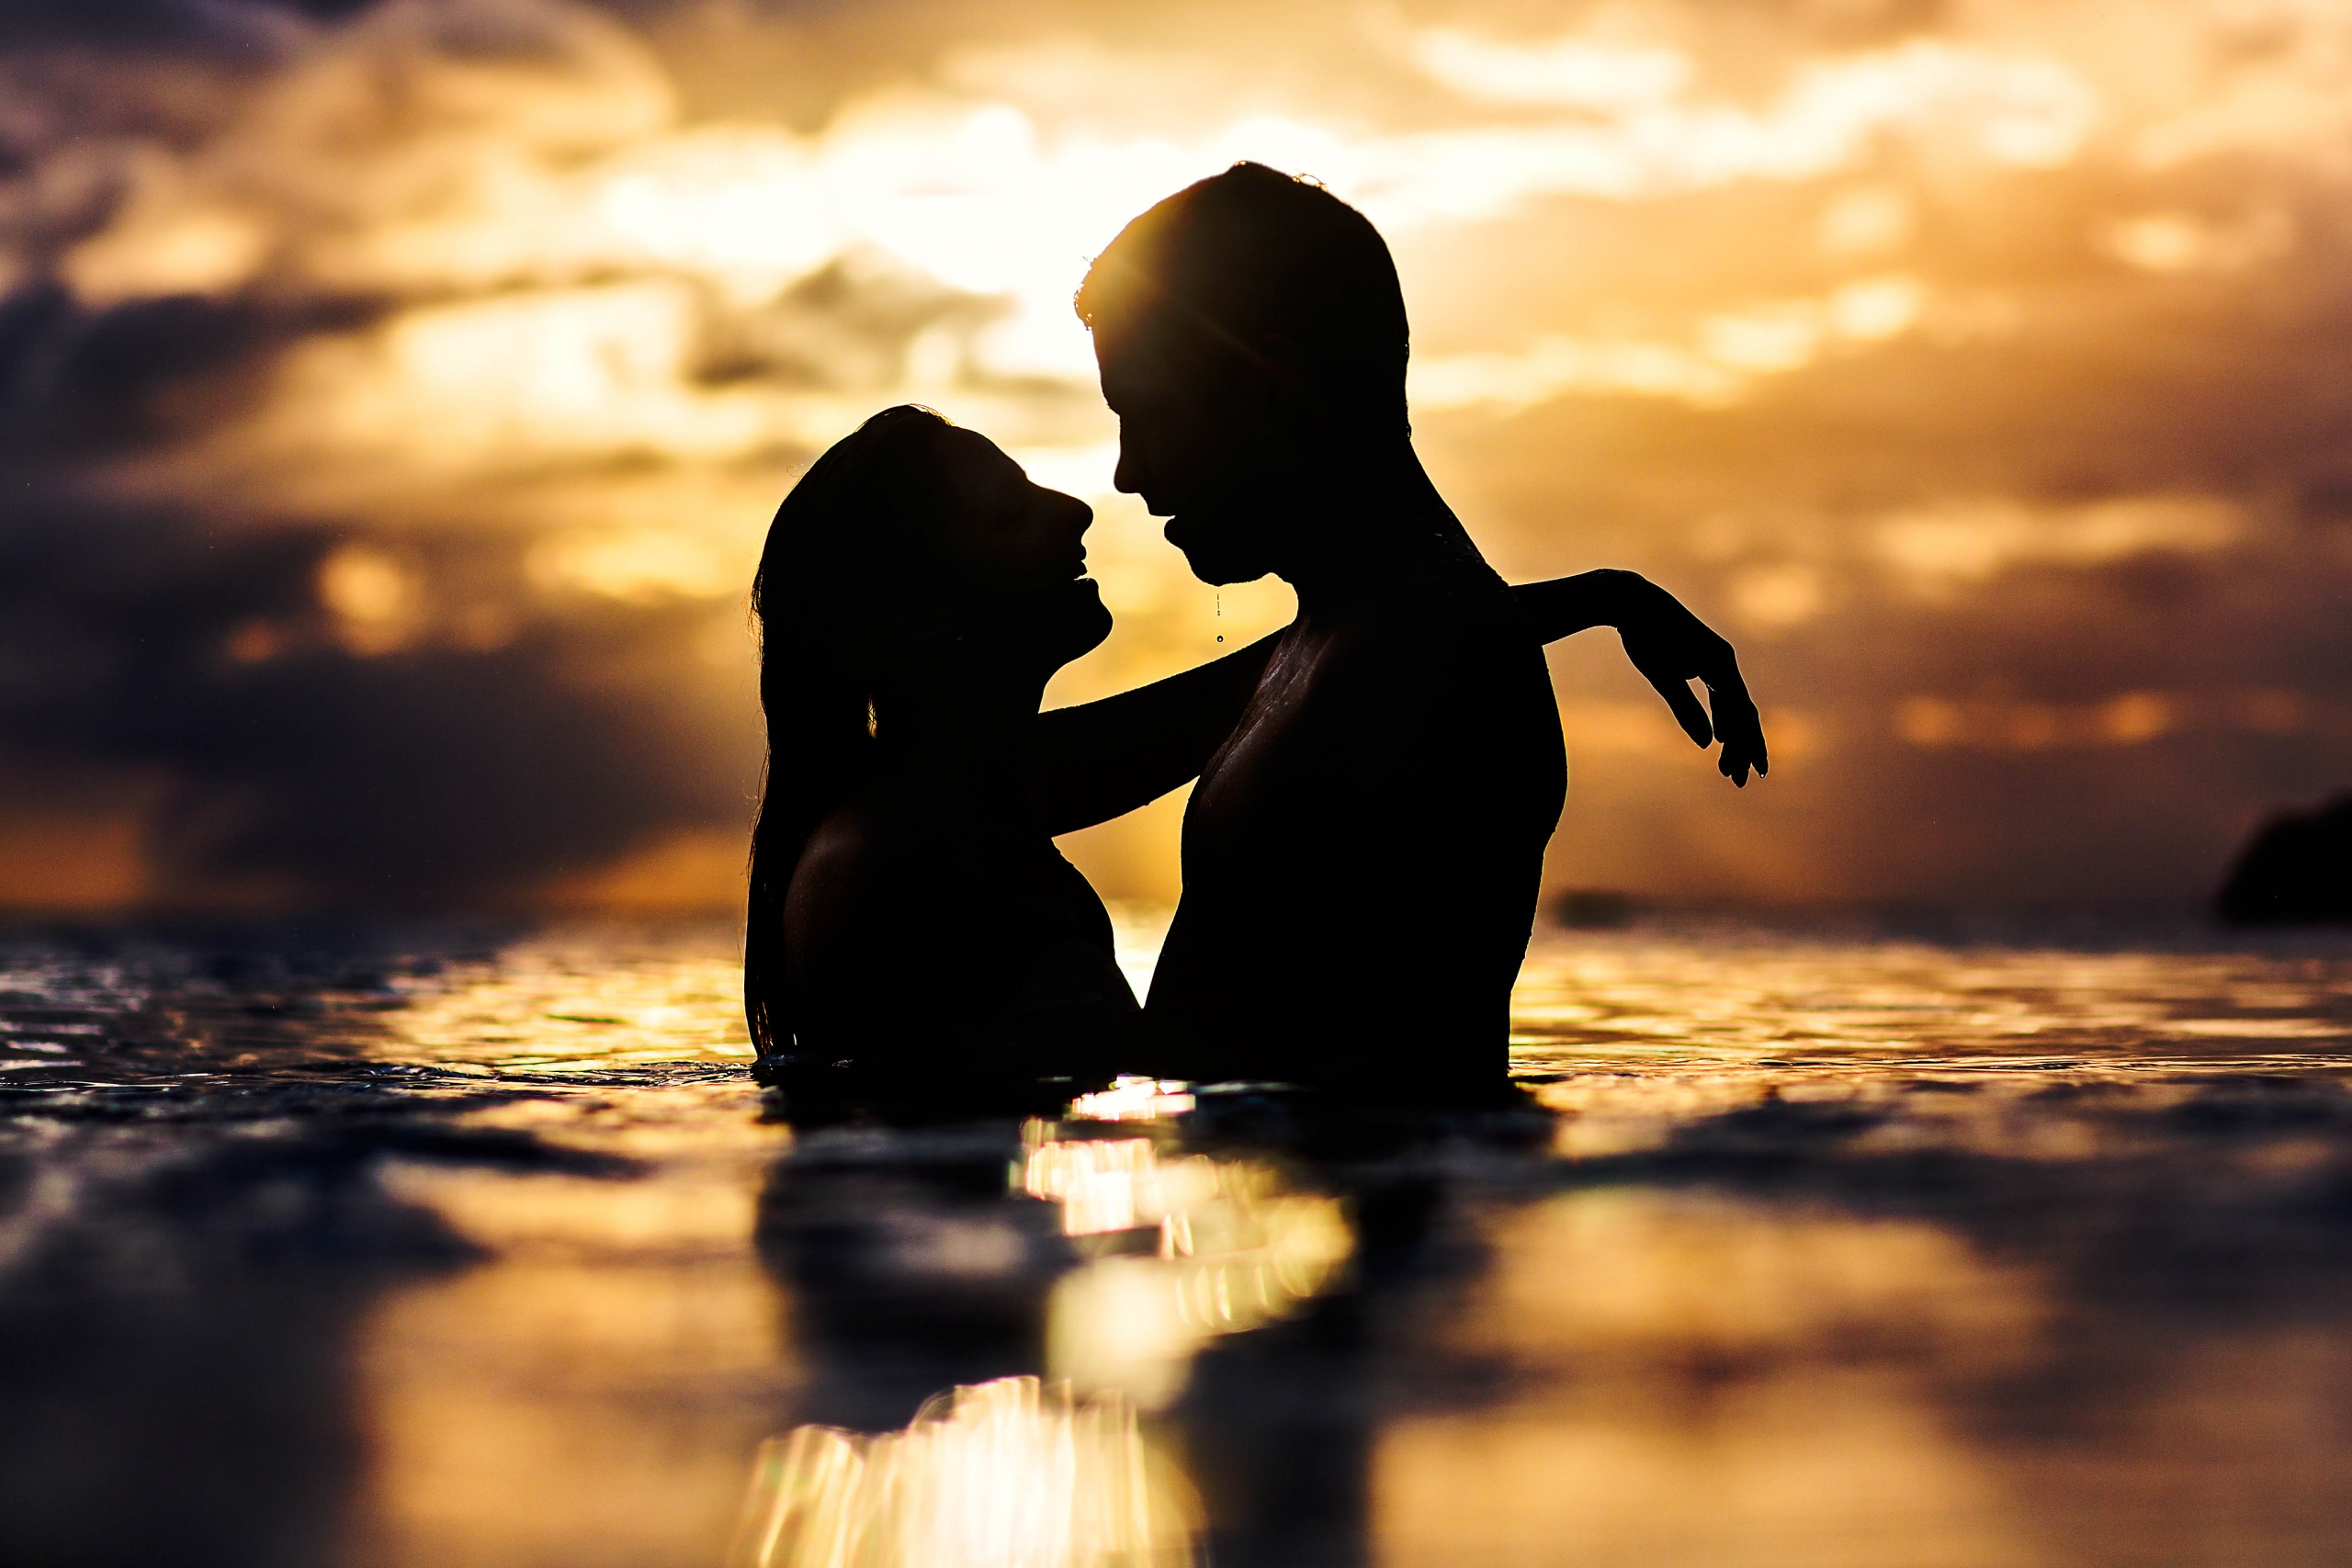 Silhouette of couple embracing in ocean at sunset